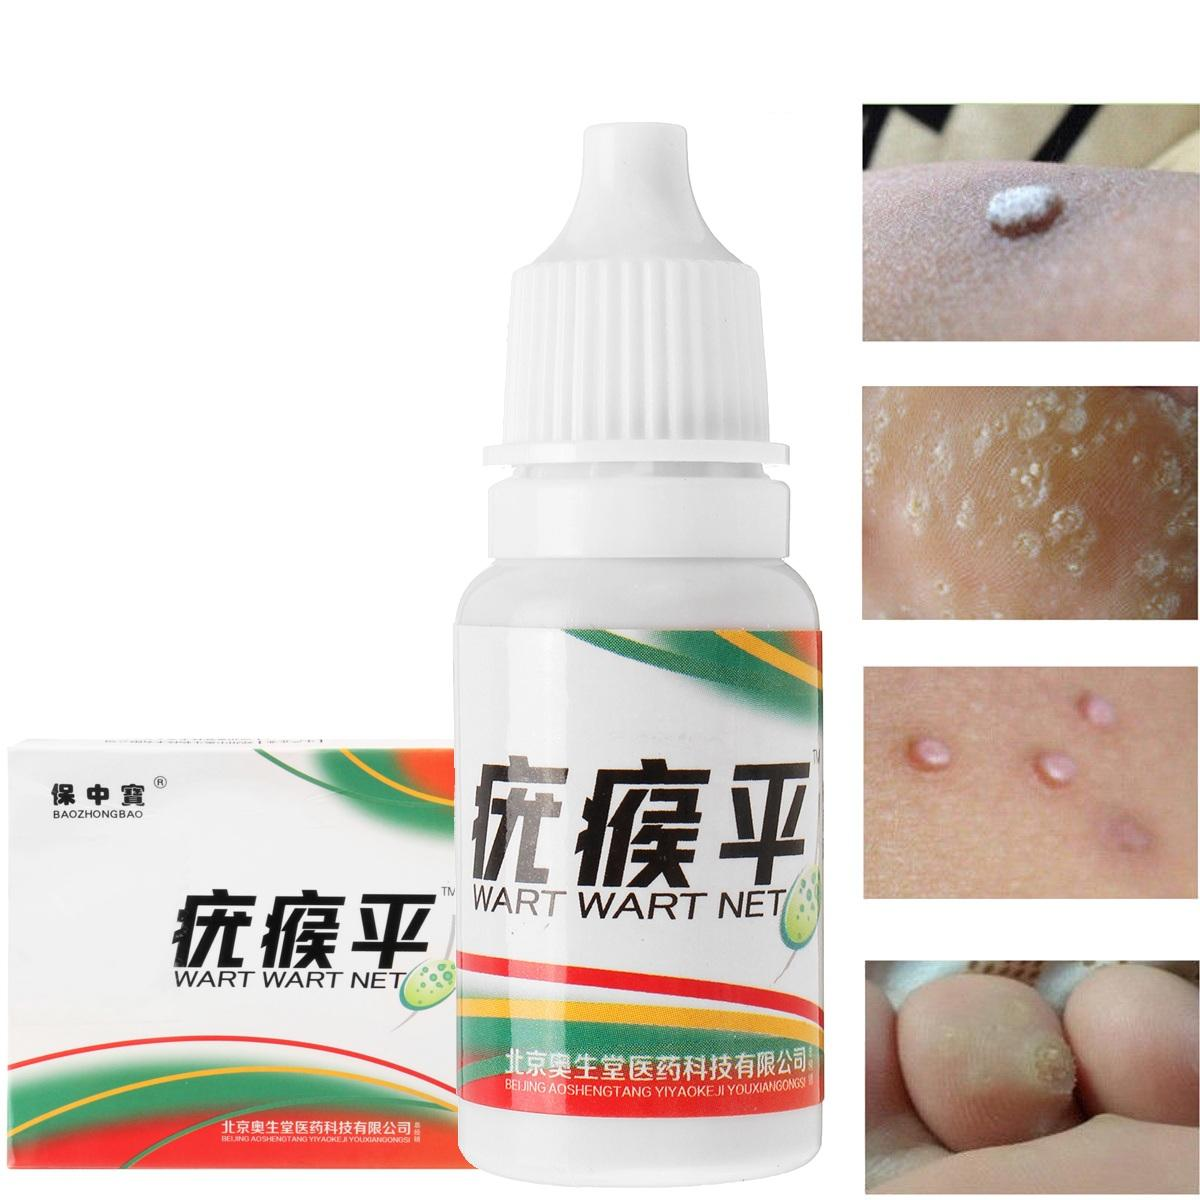 wart off on skin tags papilloma mouth icd 10